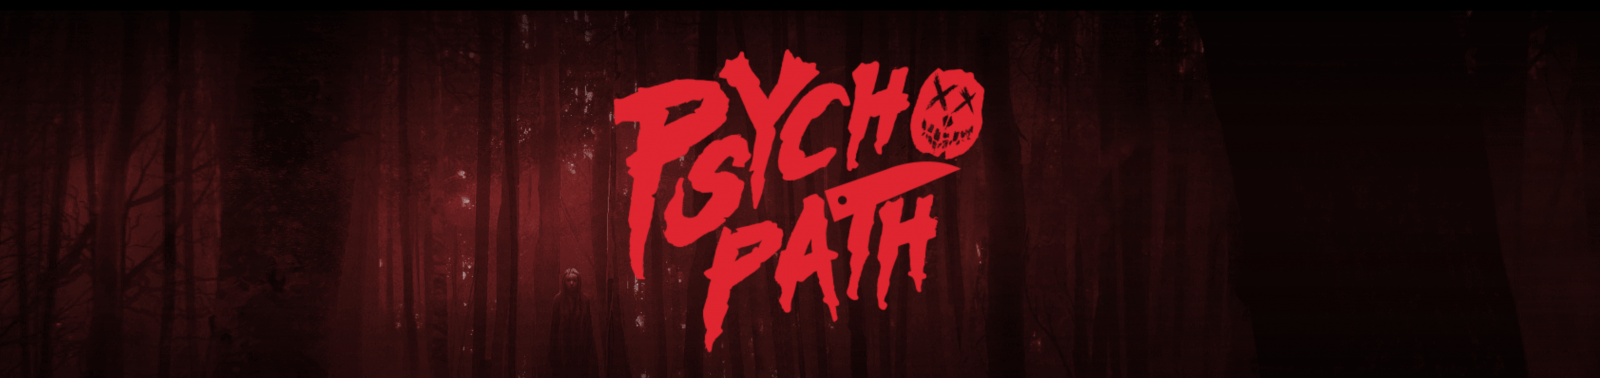 banner Image of Psycho Path Horror Exoerience Logo for fashion Voyeur Blog